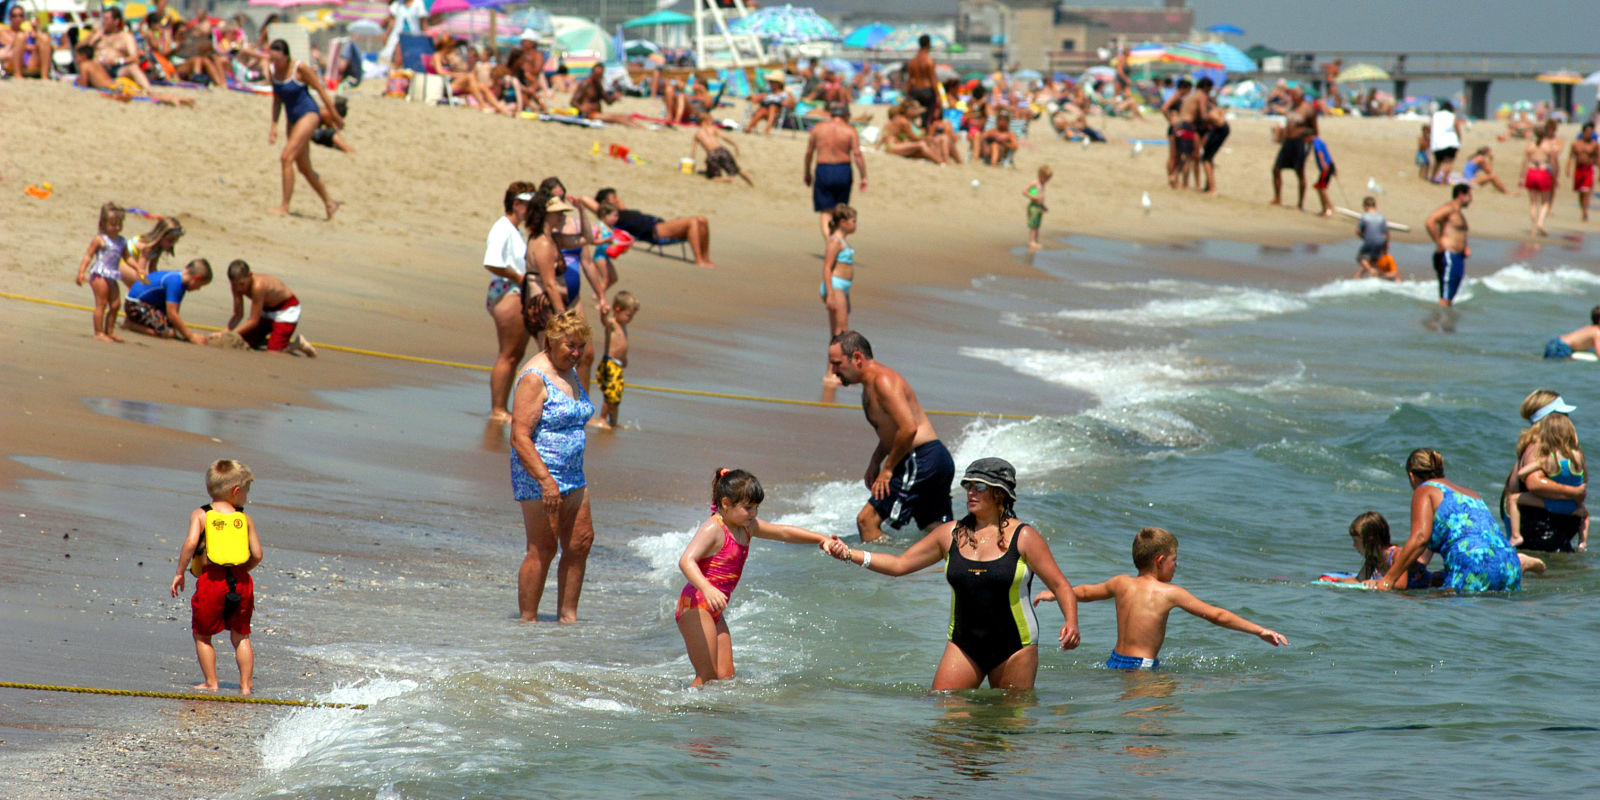 New Jersey Beaches Closed High Levels Of Bacteria In Water